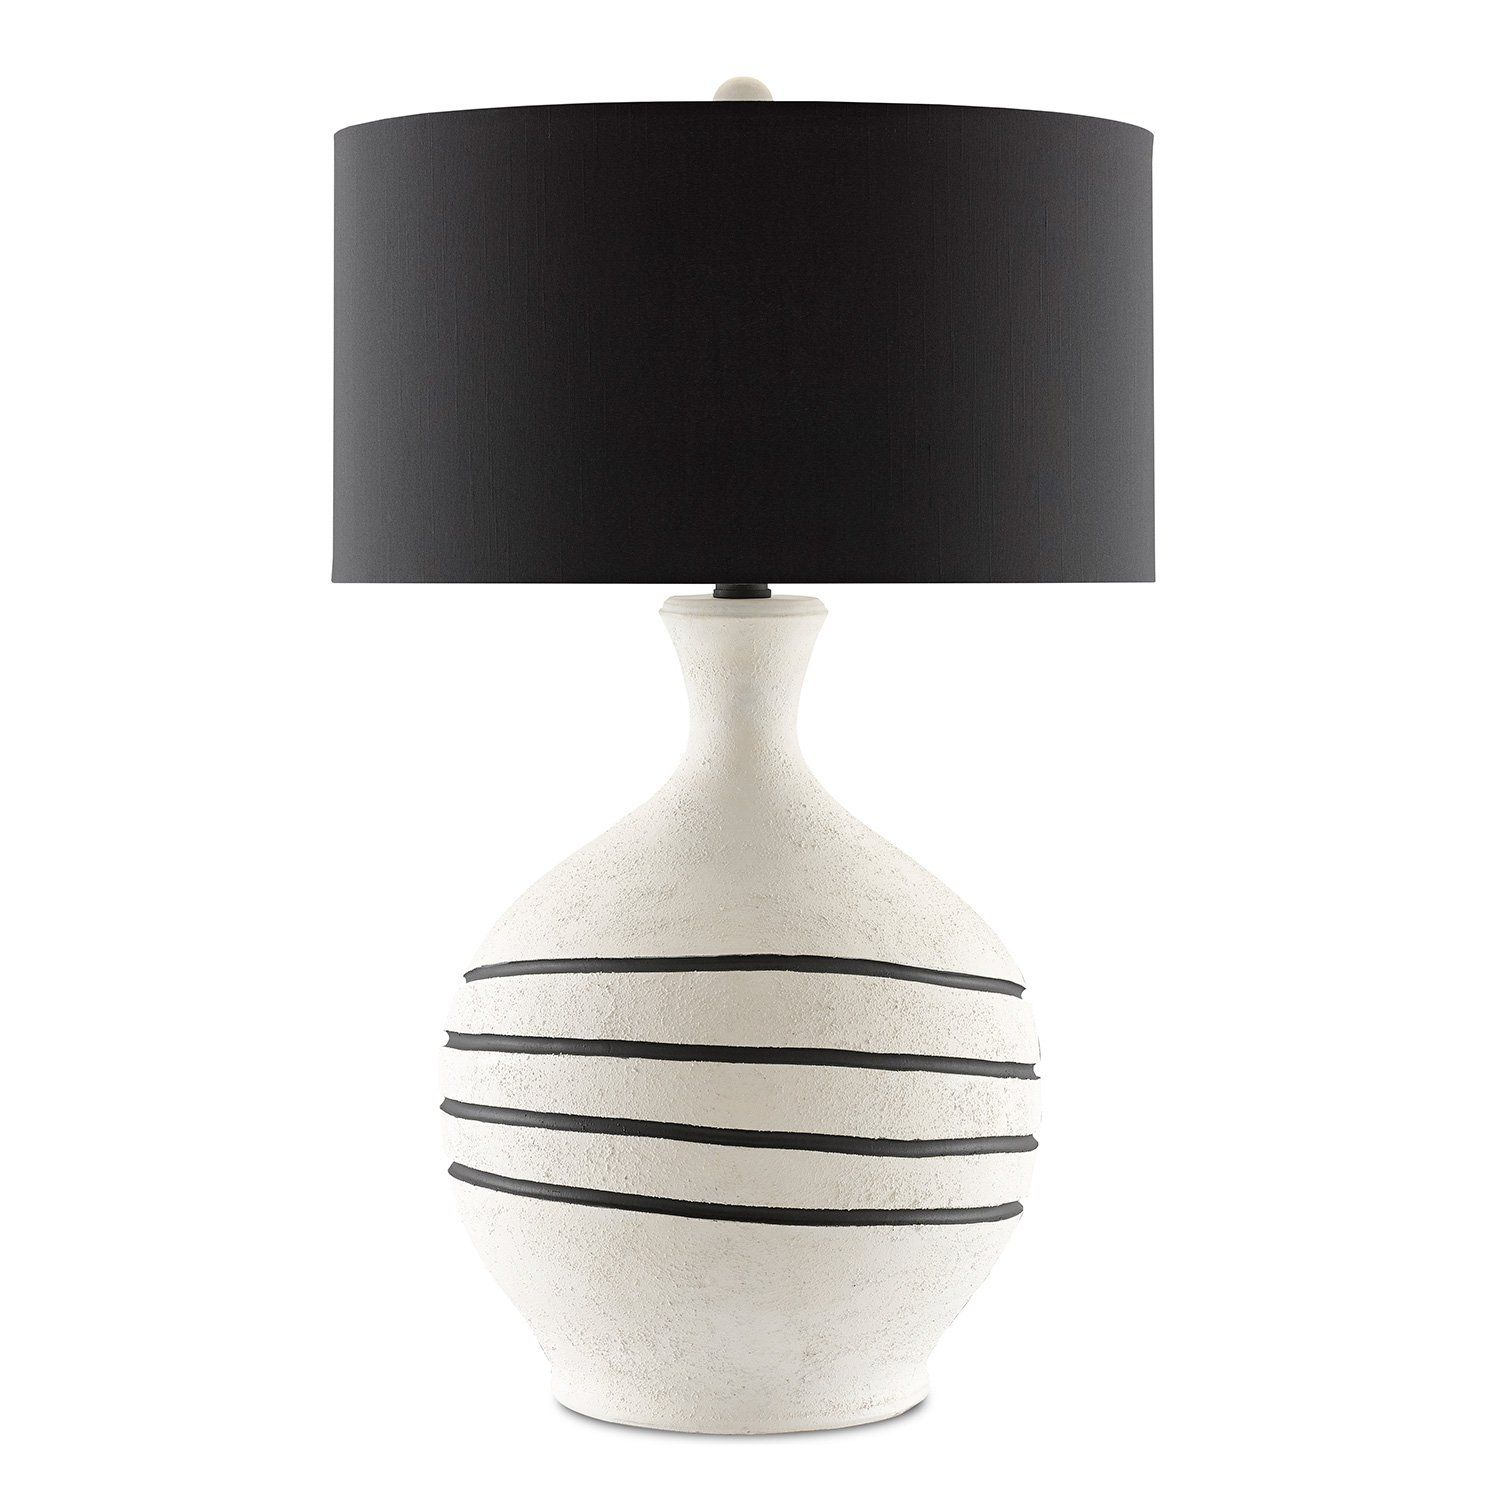 Currey Co Nabdean Table Lamp In 2020 Table Lamp Lamp White Lamp